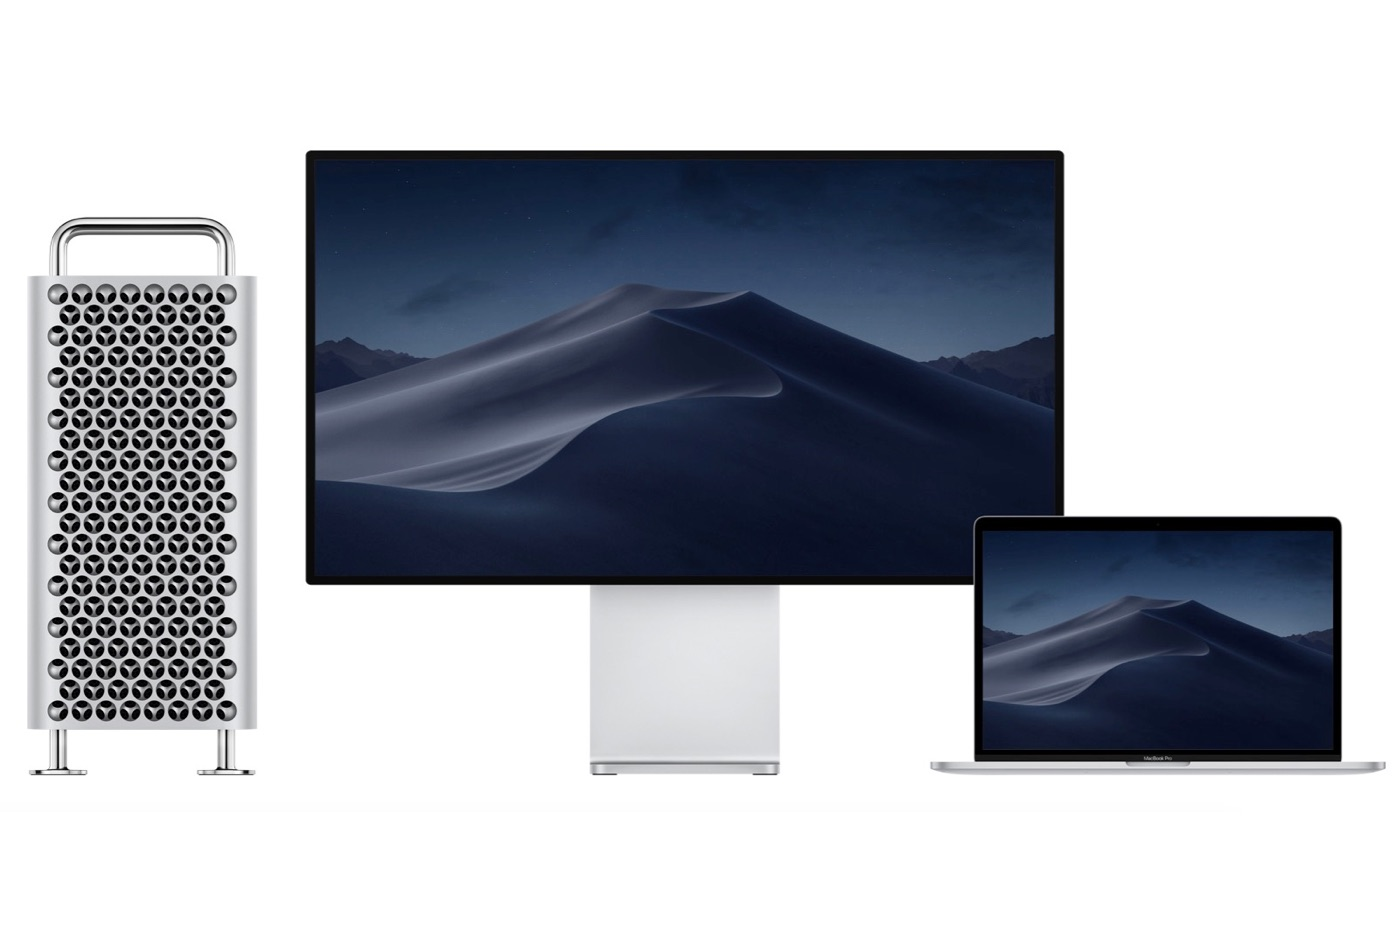 Pro Display XDR compatibilité Mac